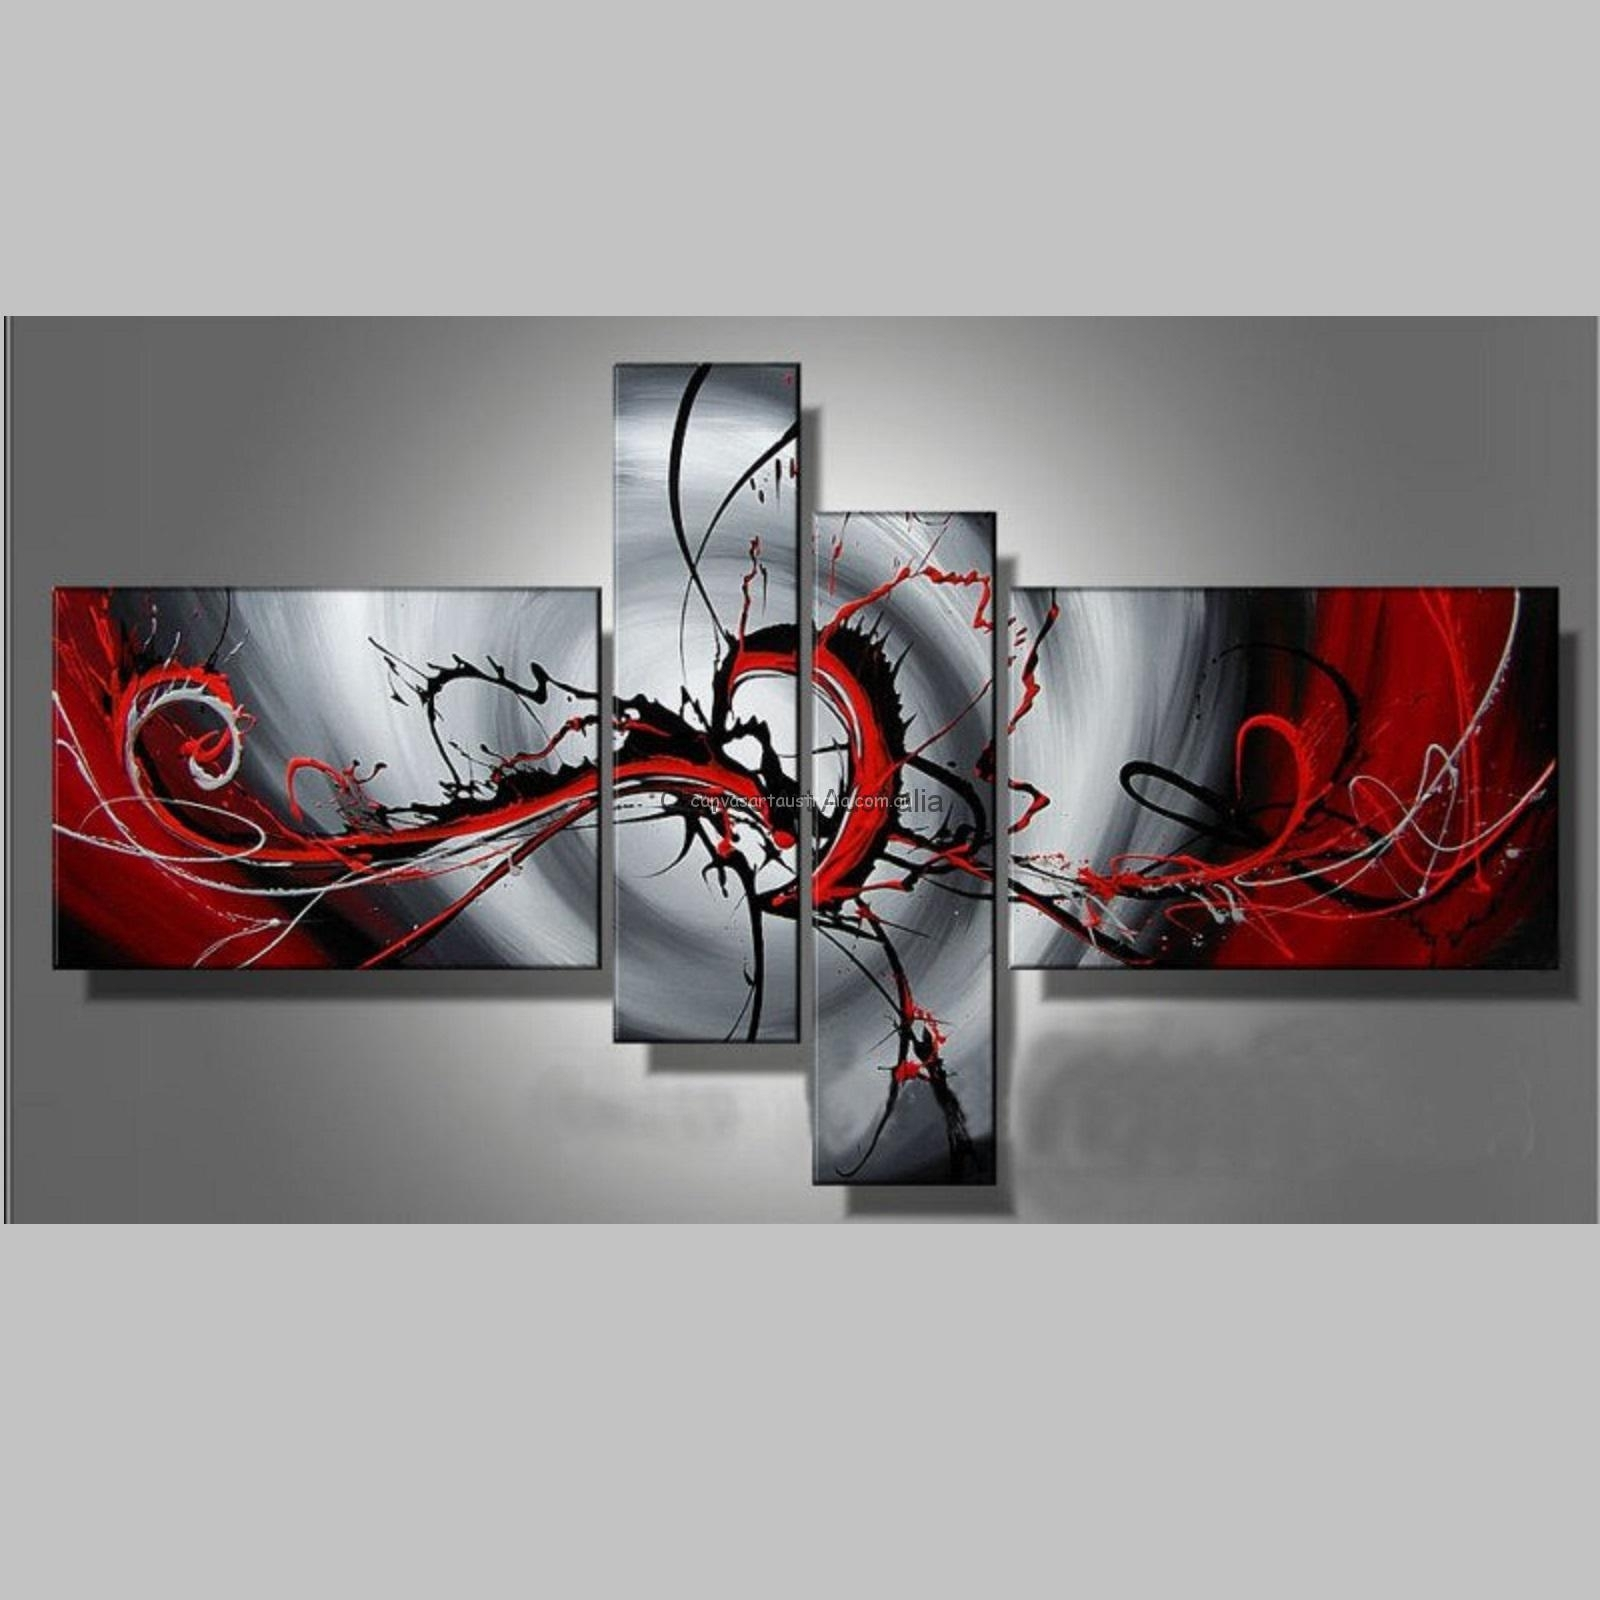 4 Piece Set  Colour Of Passion Modern Abstract – Canvas Art Australia Inside Current Abstract Wall Art Australia (View 2 of 20)